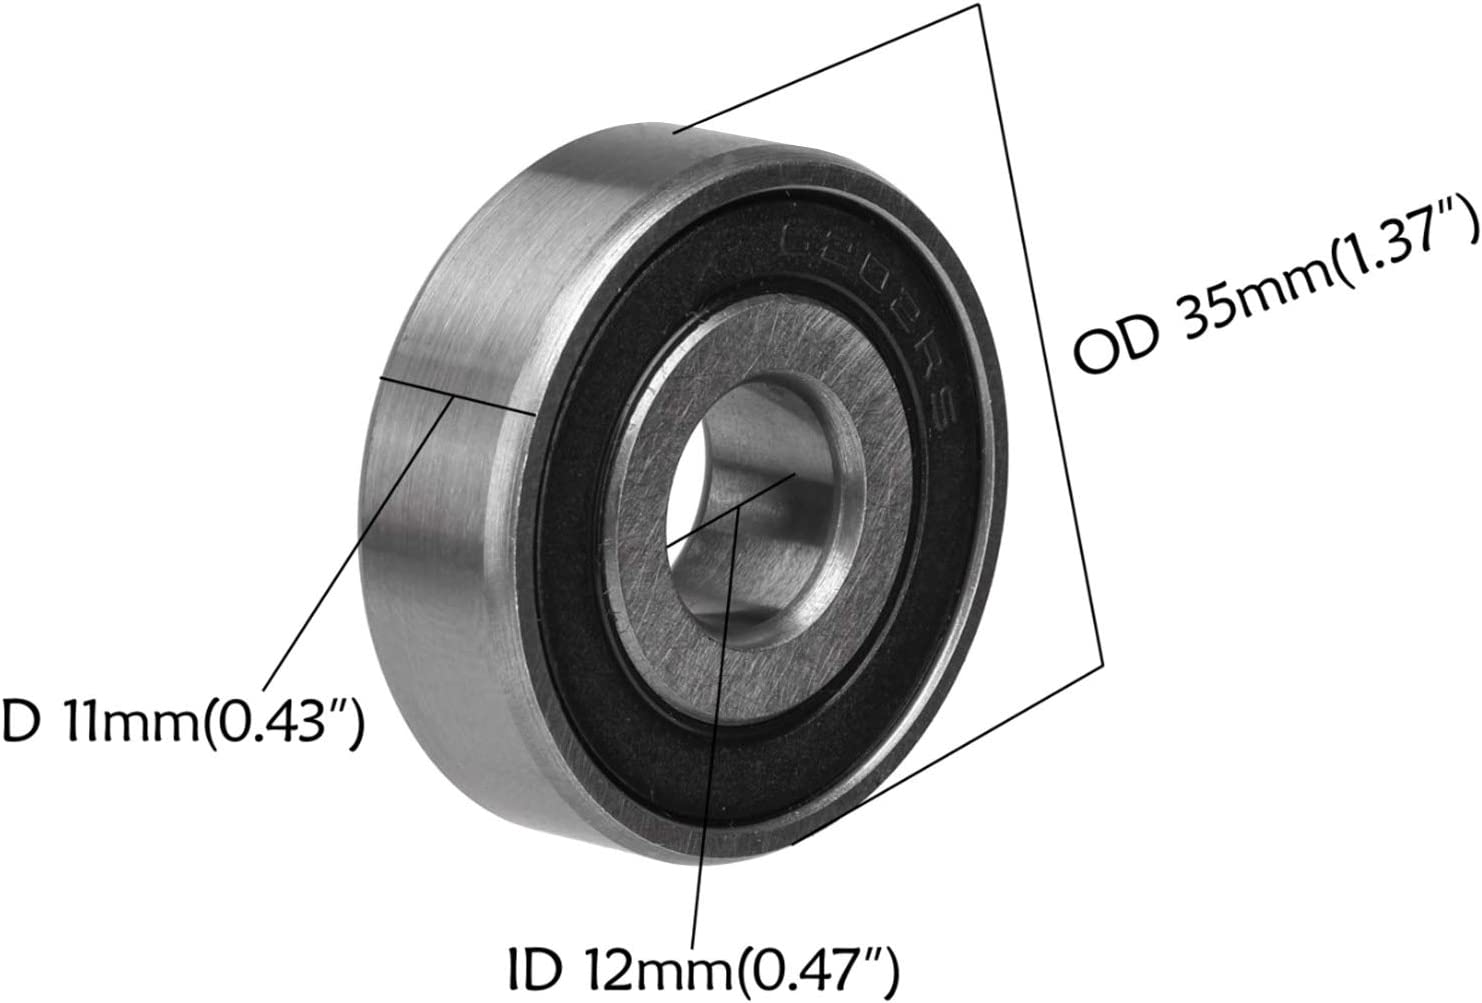 ZXTDR Front Spacer Bushes Sleeves with 2Pcs 6202 RS Ball Bearings for 15mm to 12mm Dirt Pit Bike Wheel Axle Front Spacer